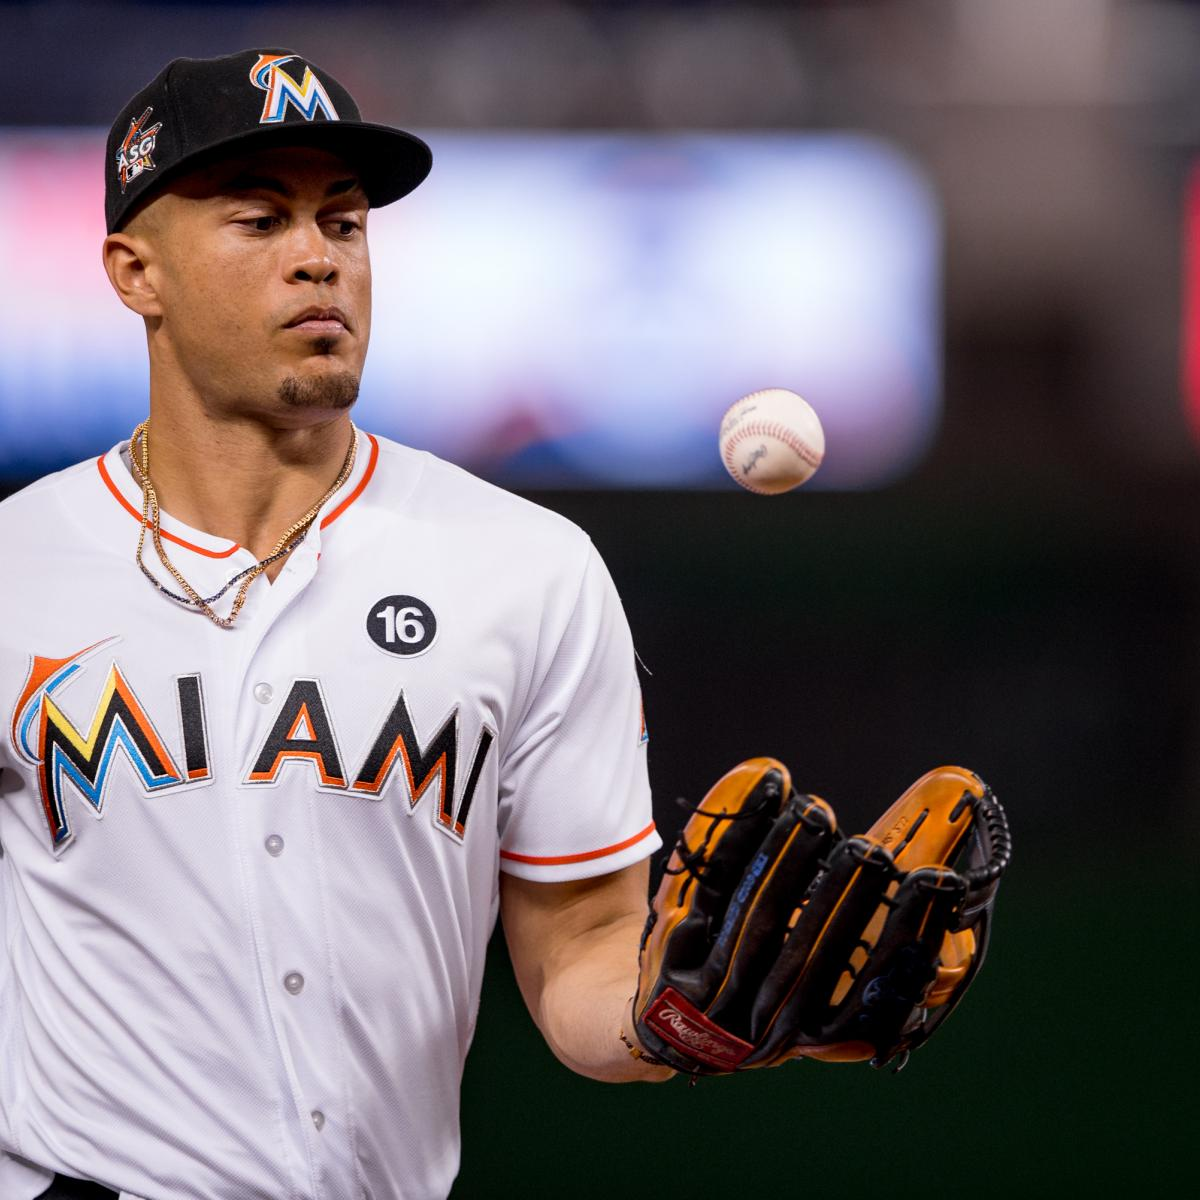 Giancarlo Stanton Of Miami Marlins Says He S Recovering: The Latest Miami Marlins News (Bleacher Report)